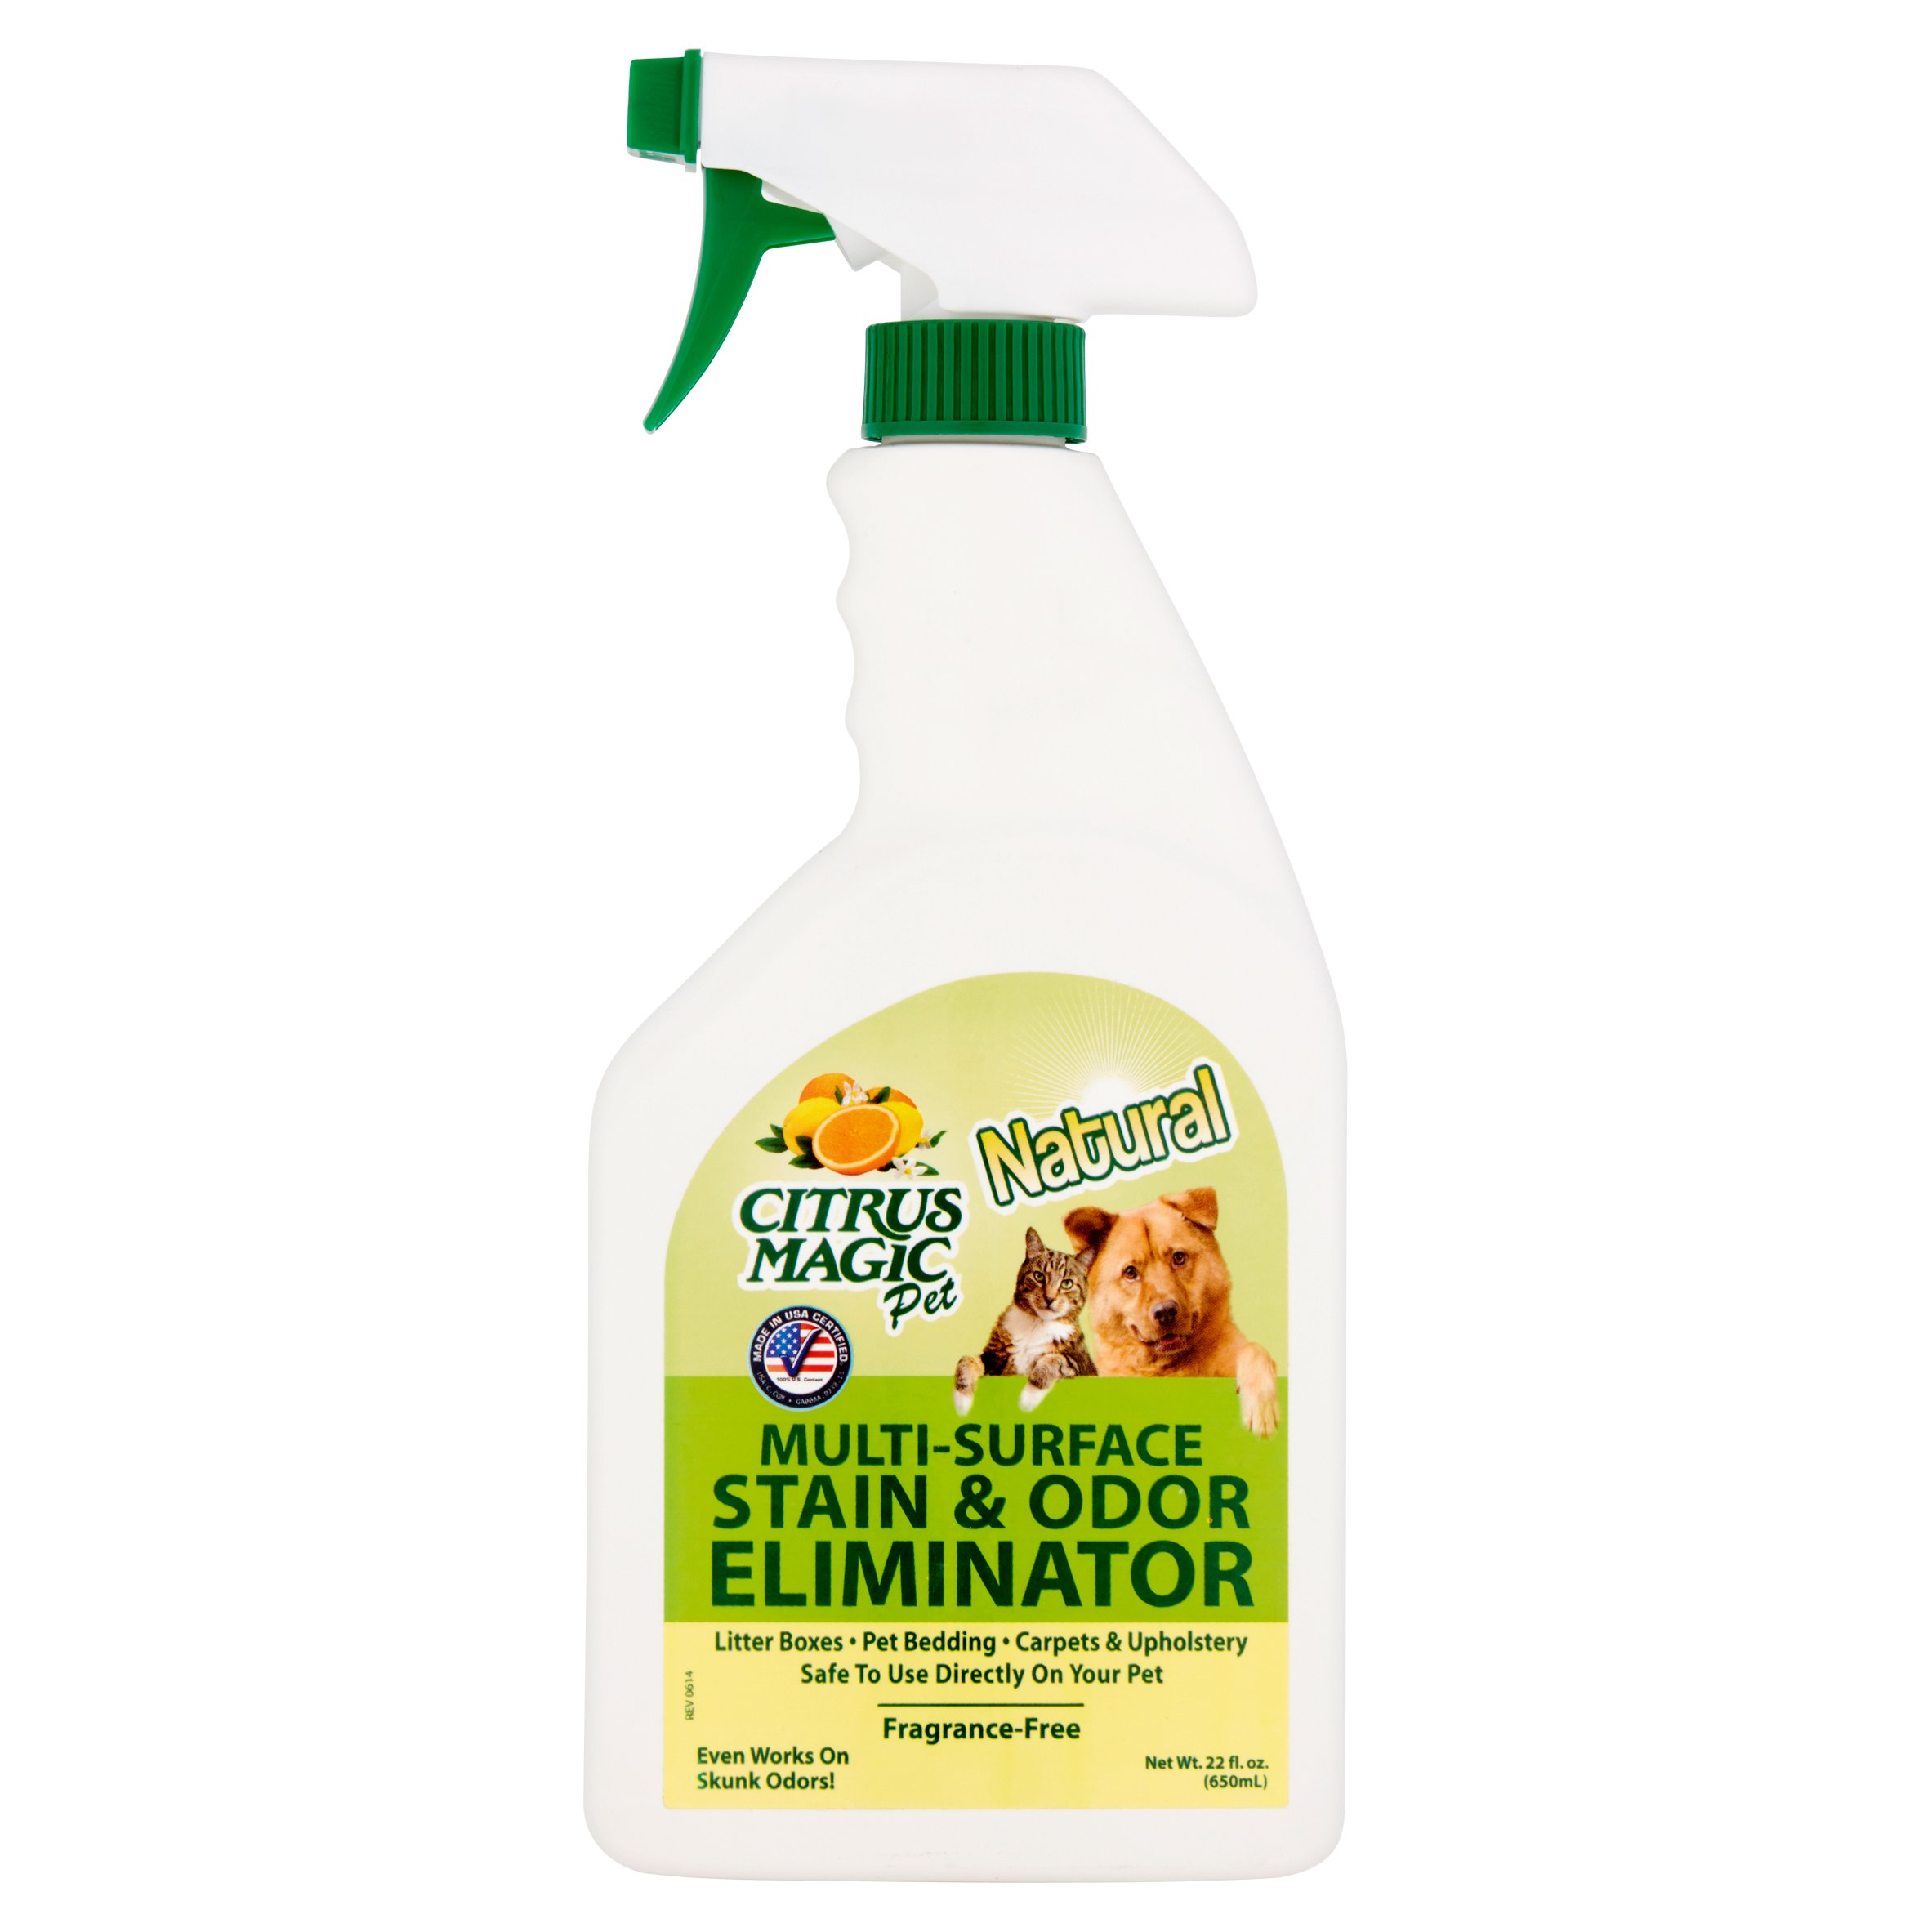 Citrus Magic Pet Natural Multi-Surface Stain & Odor Eliminator, 22 fl oz